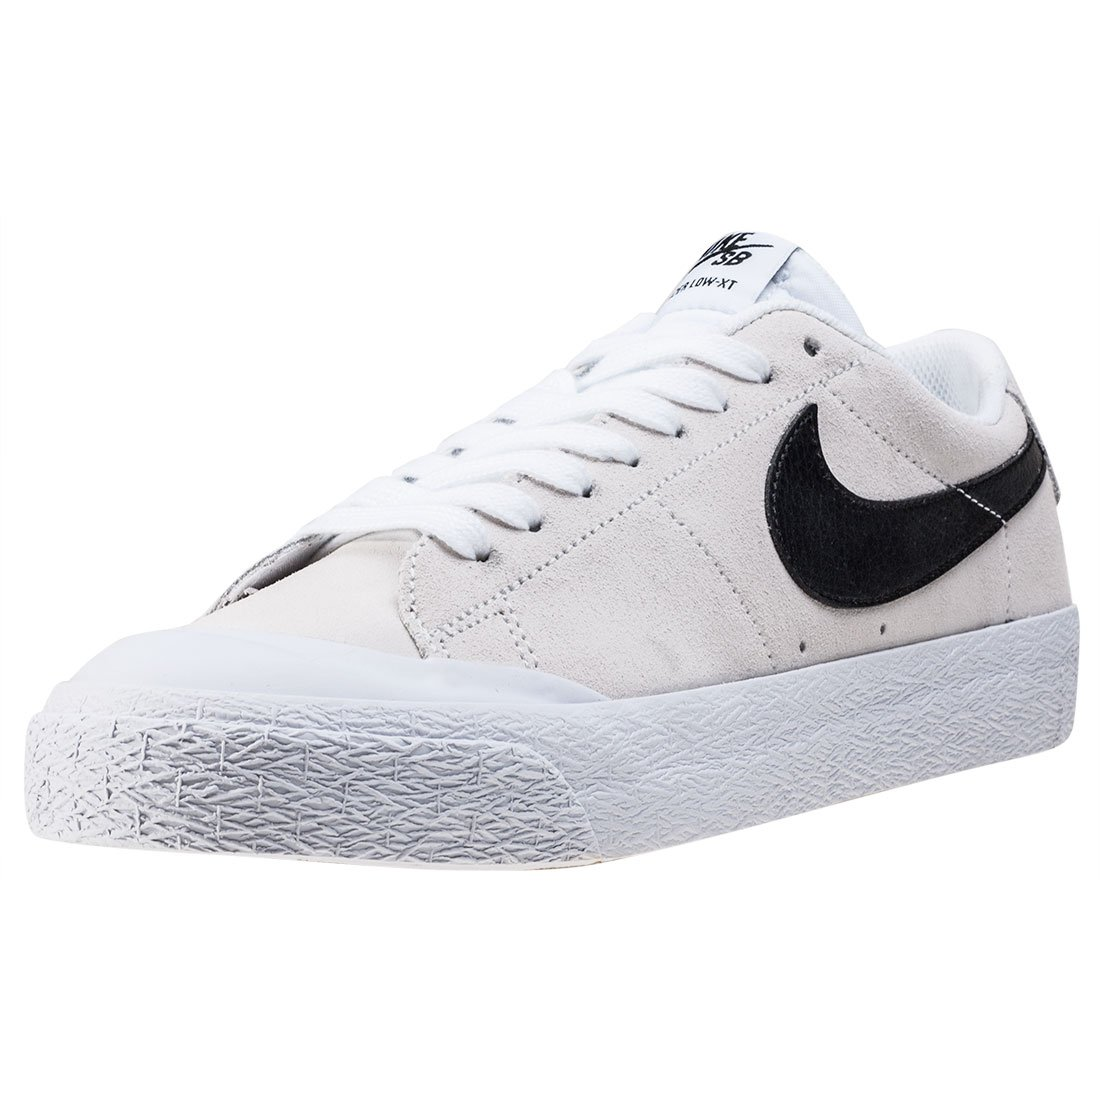 habla Correctamente transatlántico  Buy Nike Men's SB Blazer Zoom Low XT Summit White/Black/White Skate Shoe 12  Men US at Amazon.in